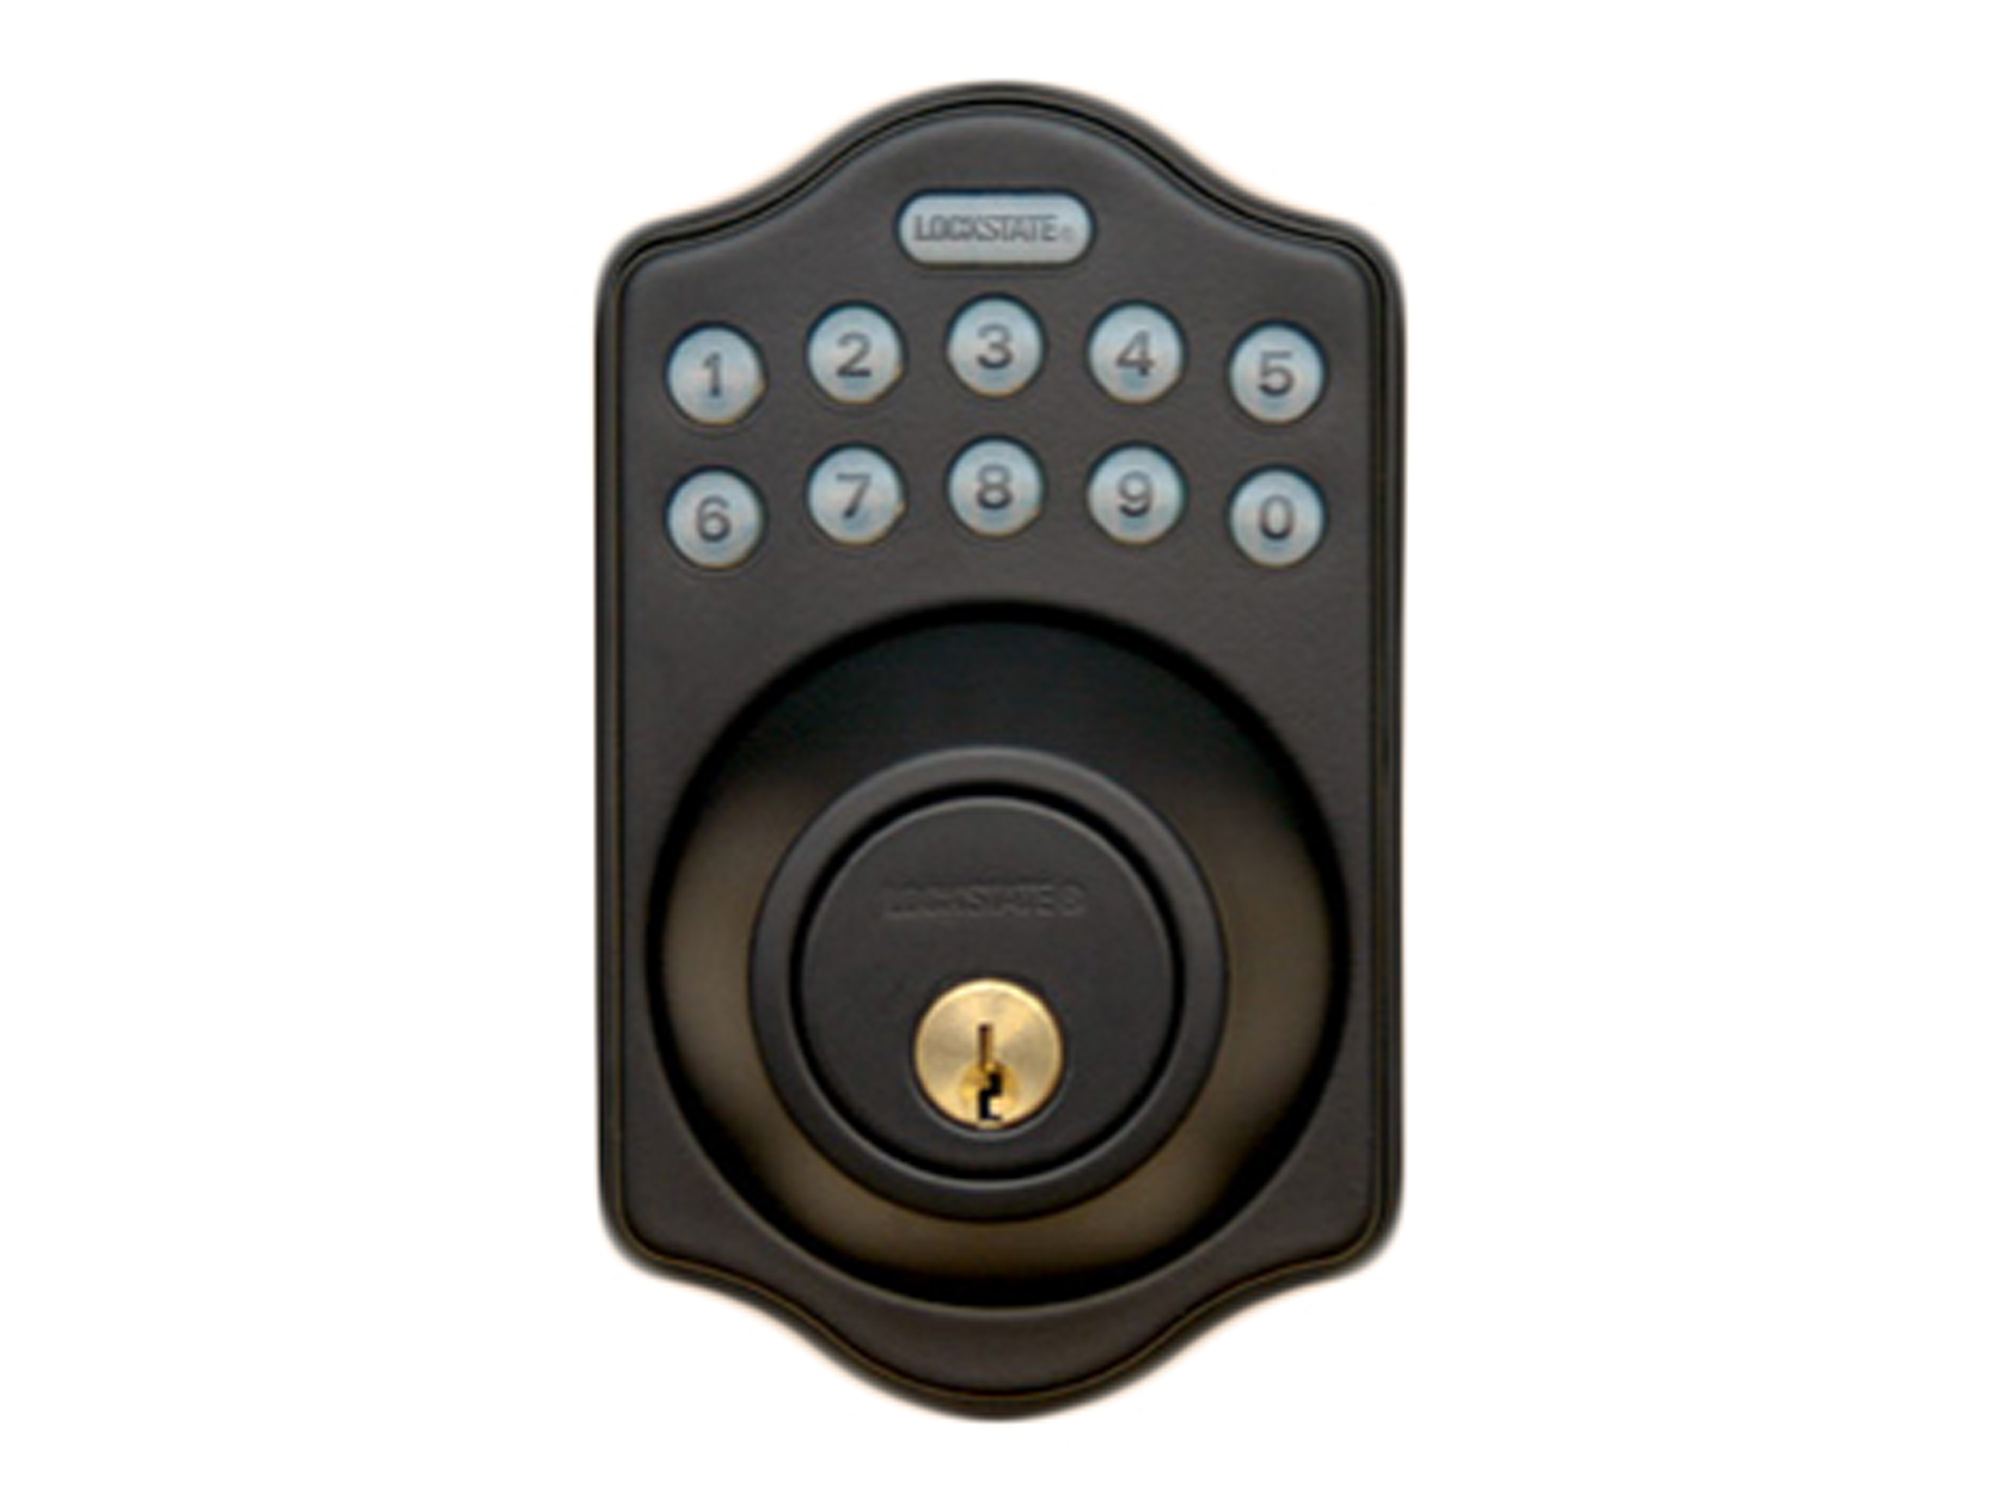 LockState RemoteLock WiFi Deadbolt 5i-A - Click Image to Close